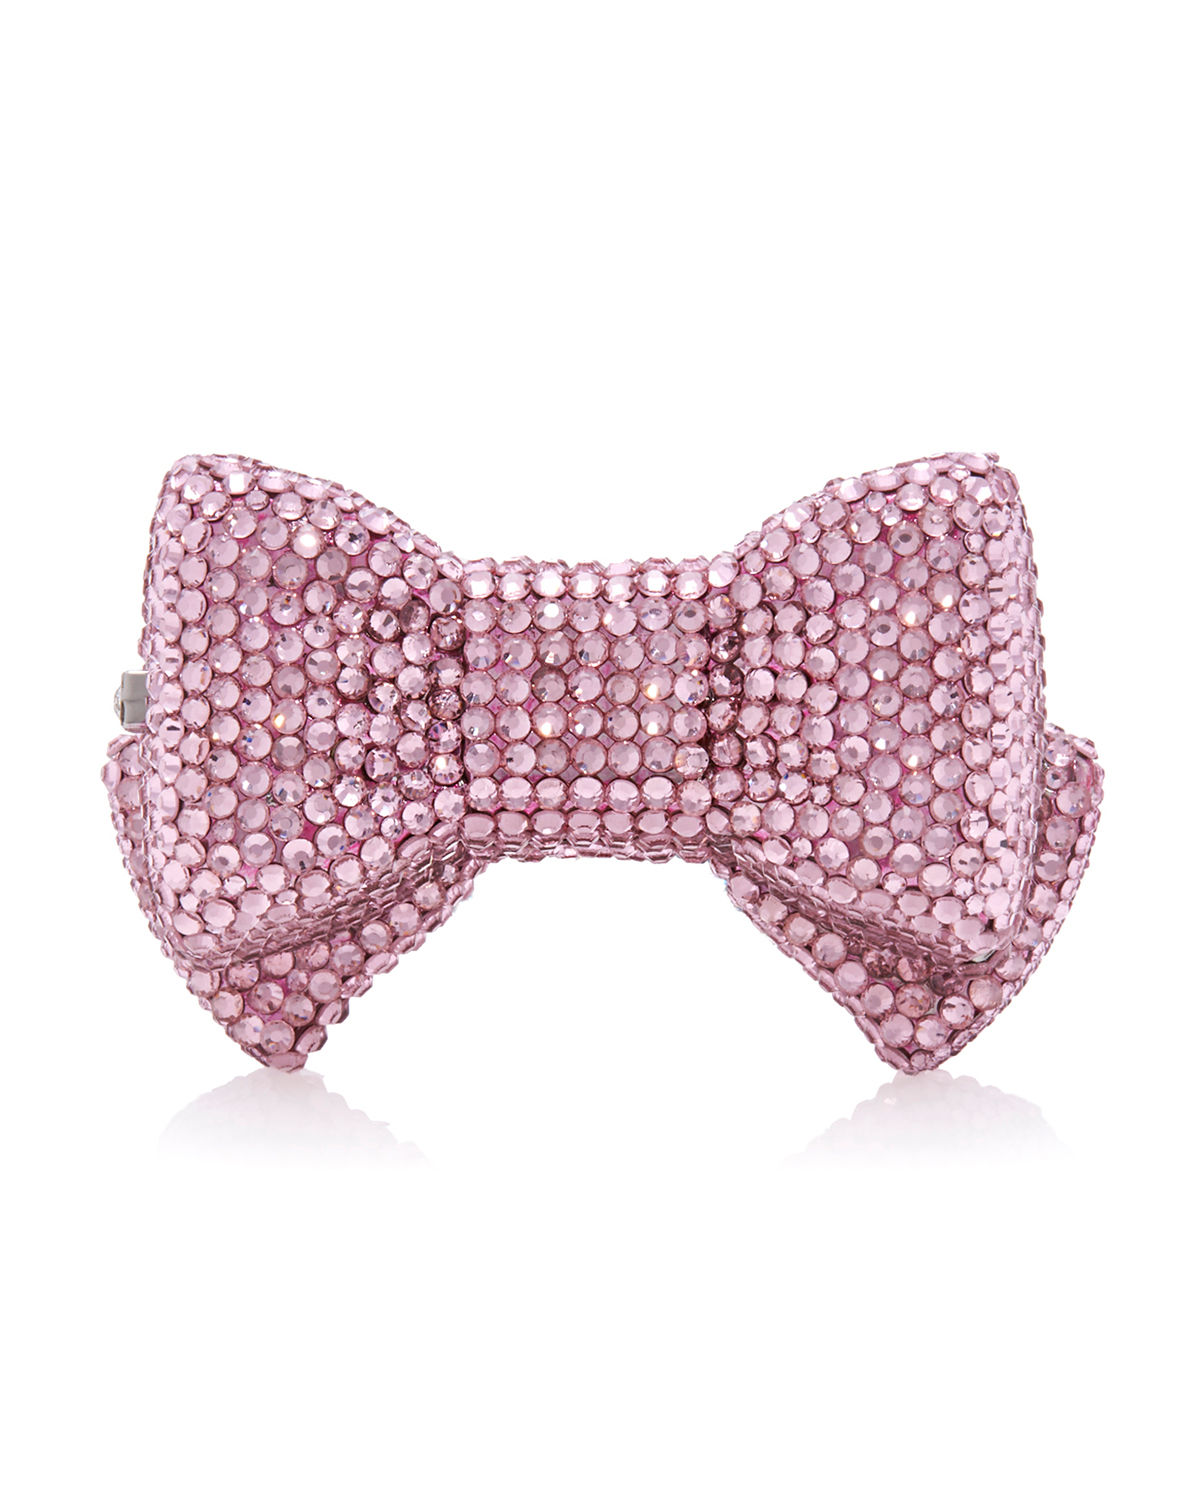 Shimmery Bow Tie Crystal Pillbox